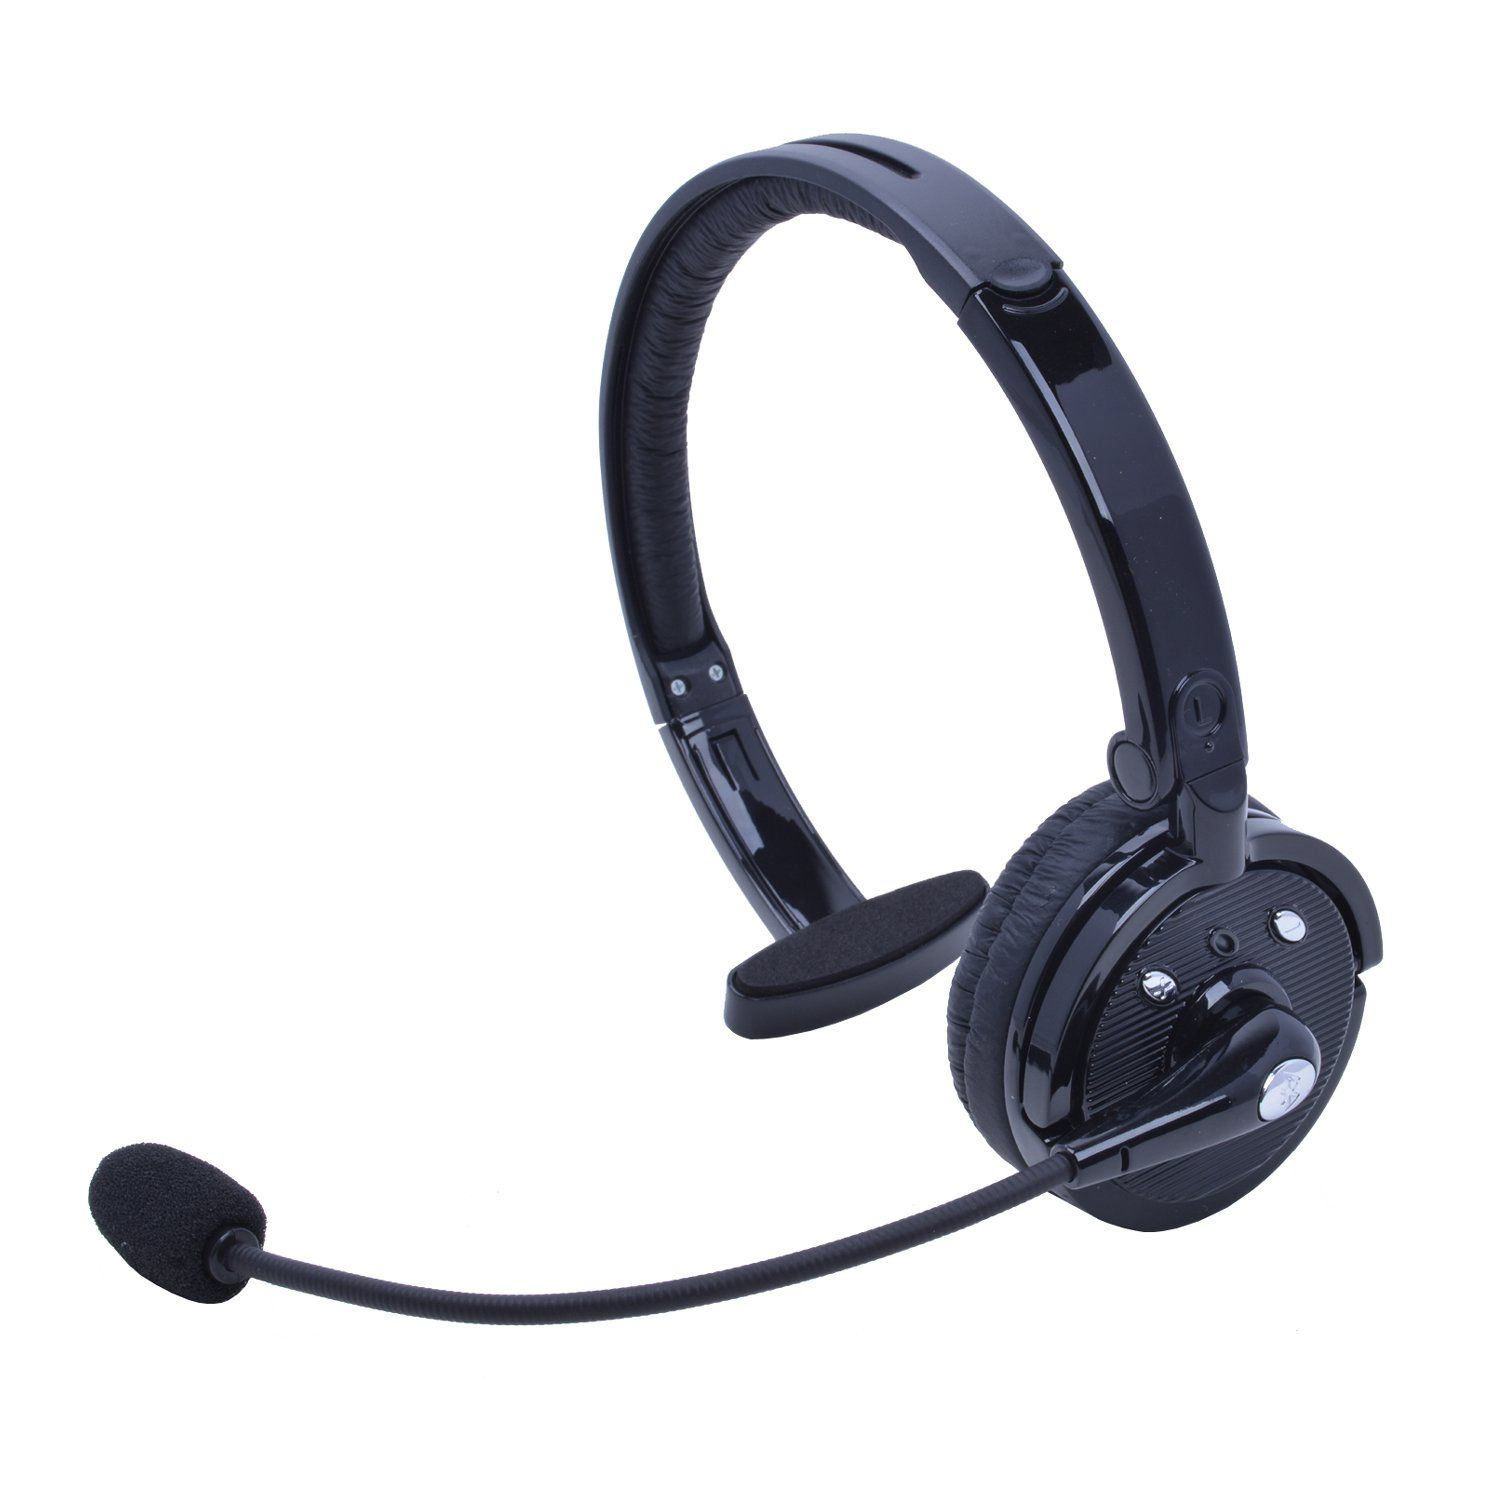 9beeabcfda7 Wireless Truck Driver Bluetooth Headset with Boom Microphone - stardrift  Over-the-Head Foldable